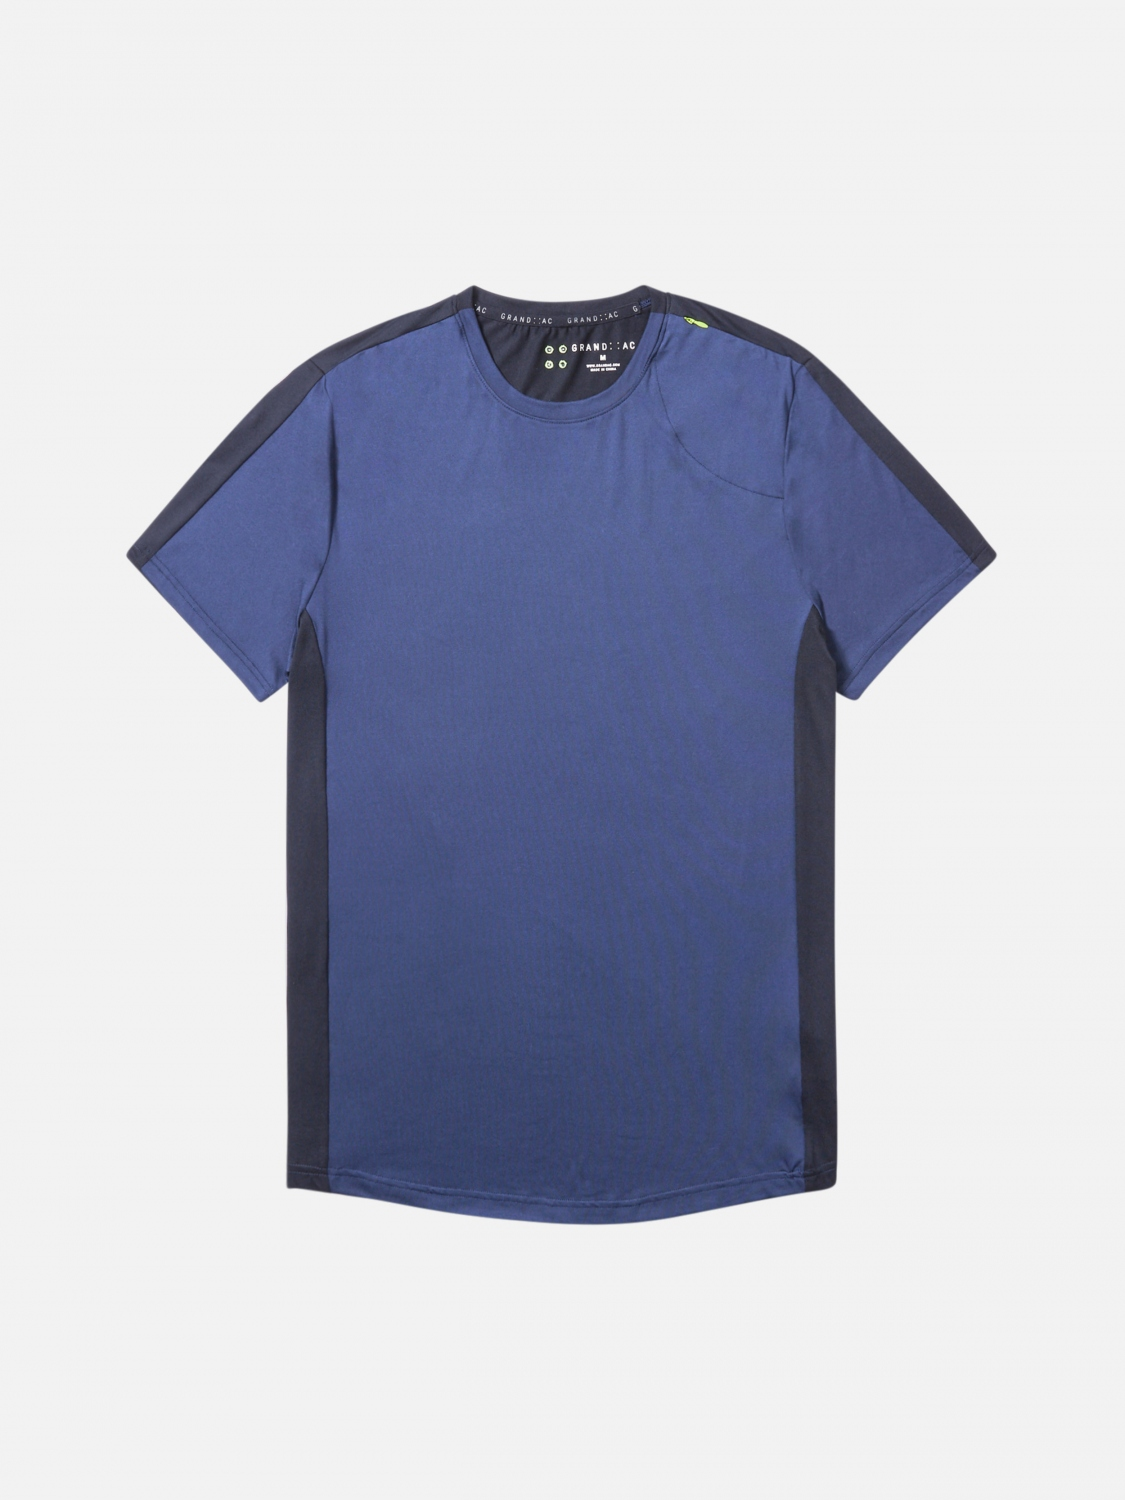 keane short sleeve - navy